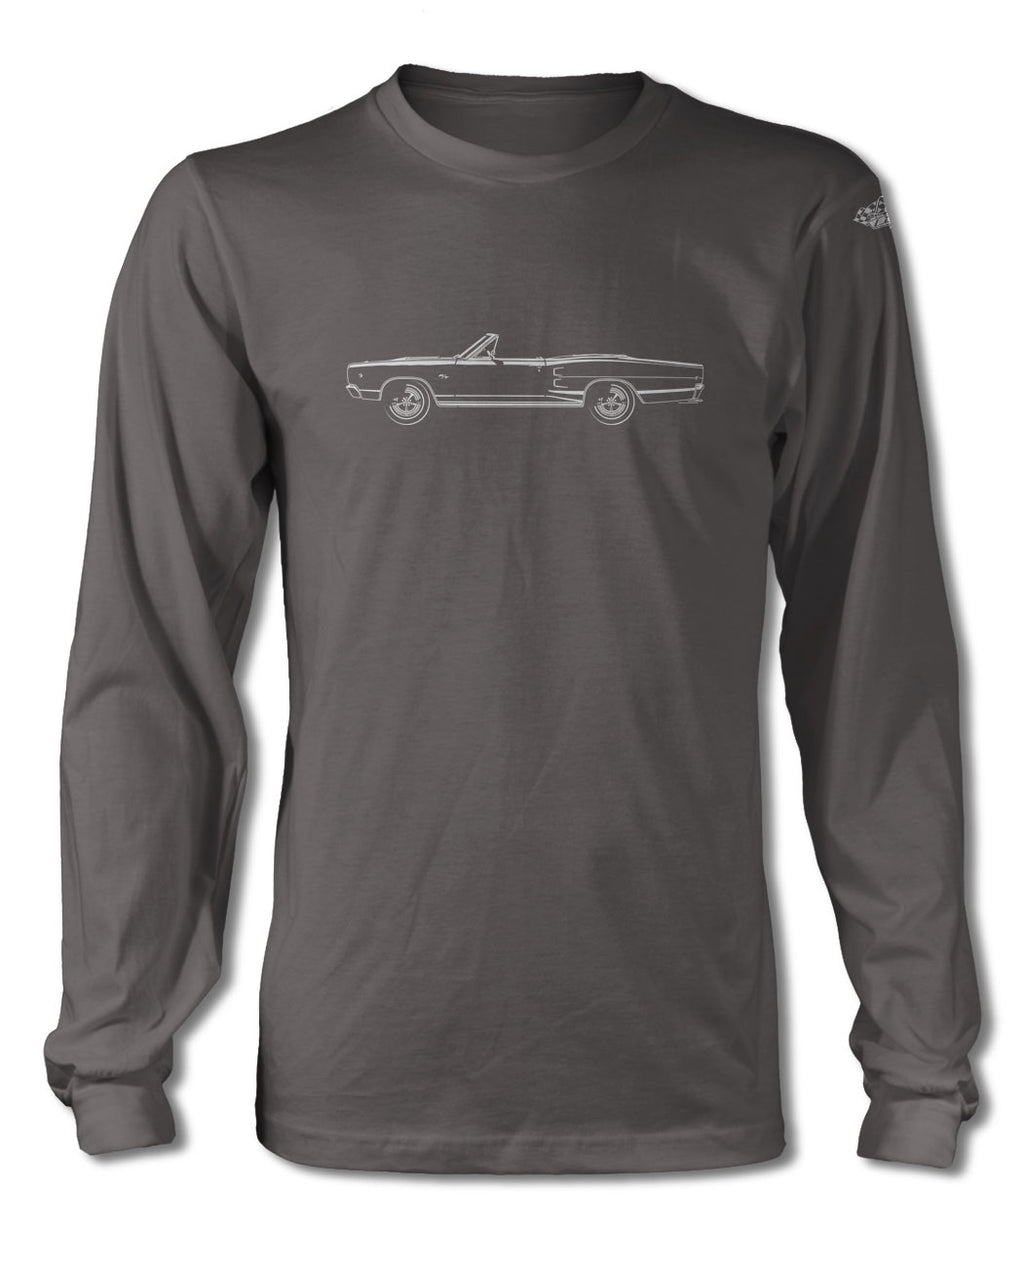 1968 Dodge Coronet RT Convertible T-Shirt - Long Sleeves - Side View